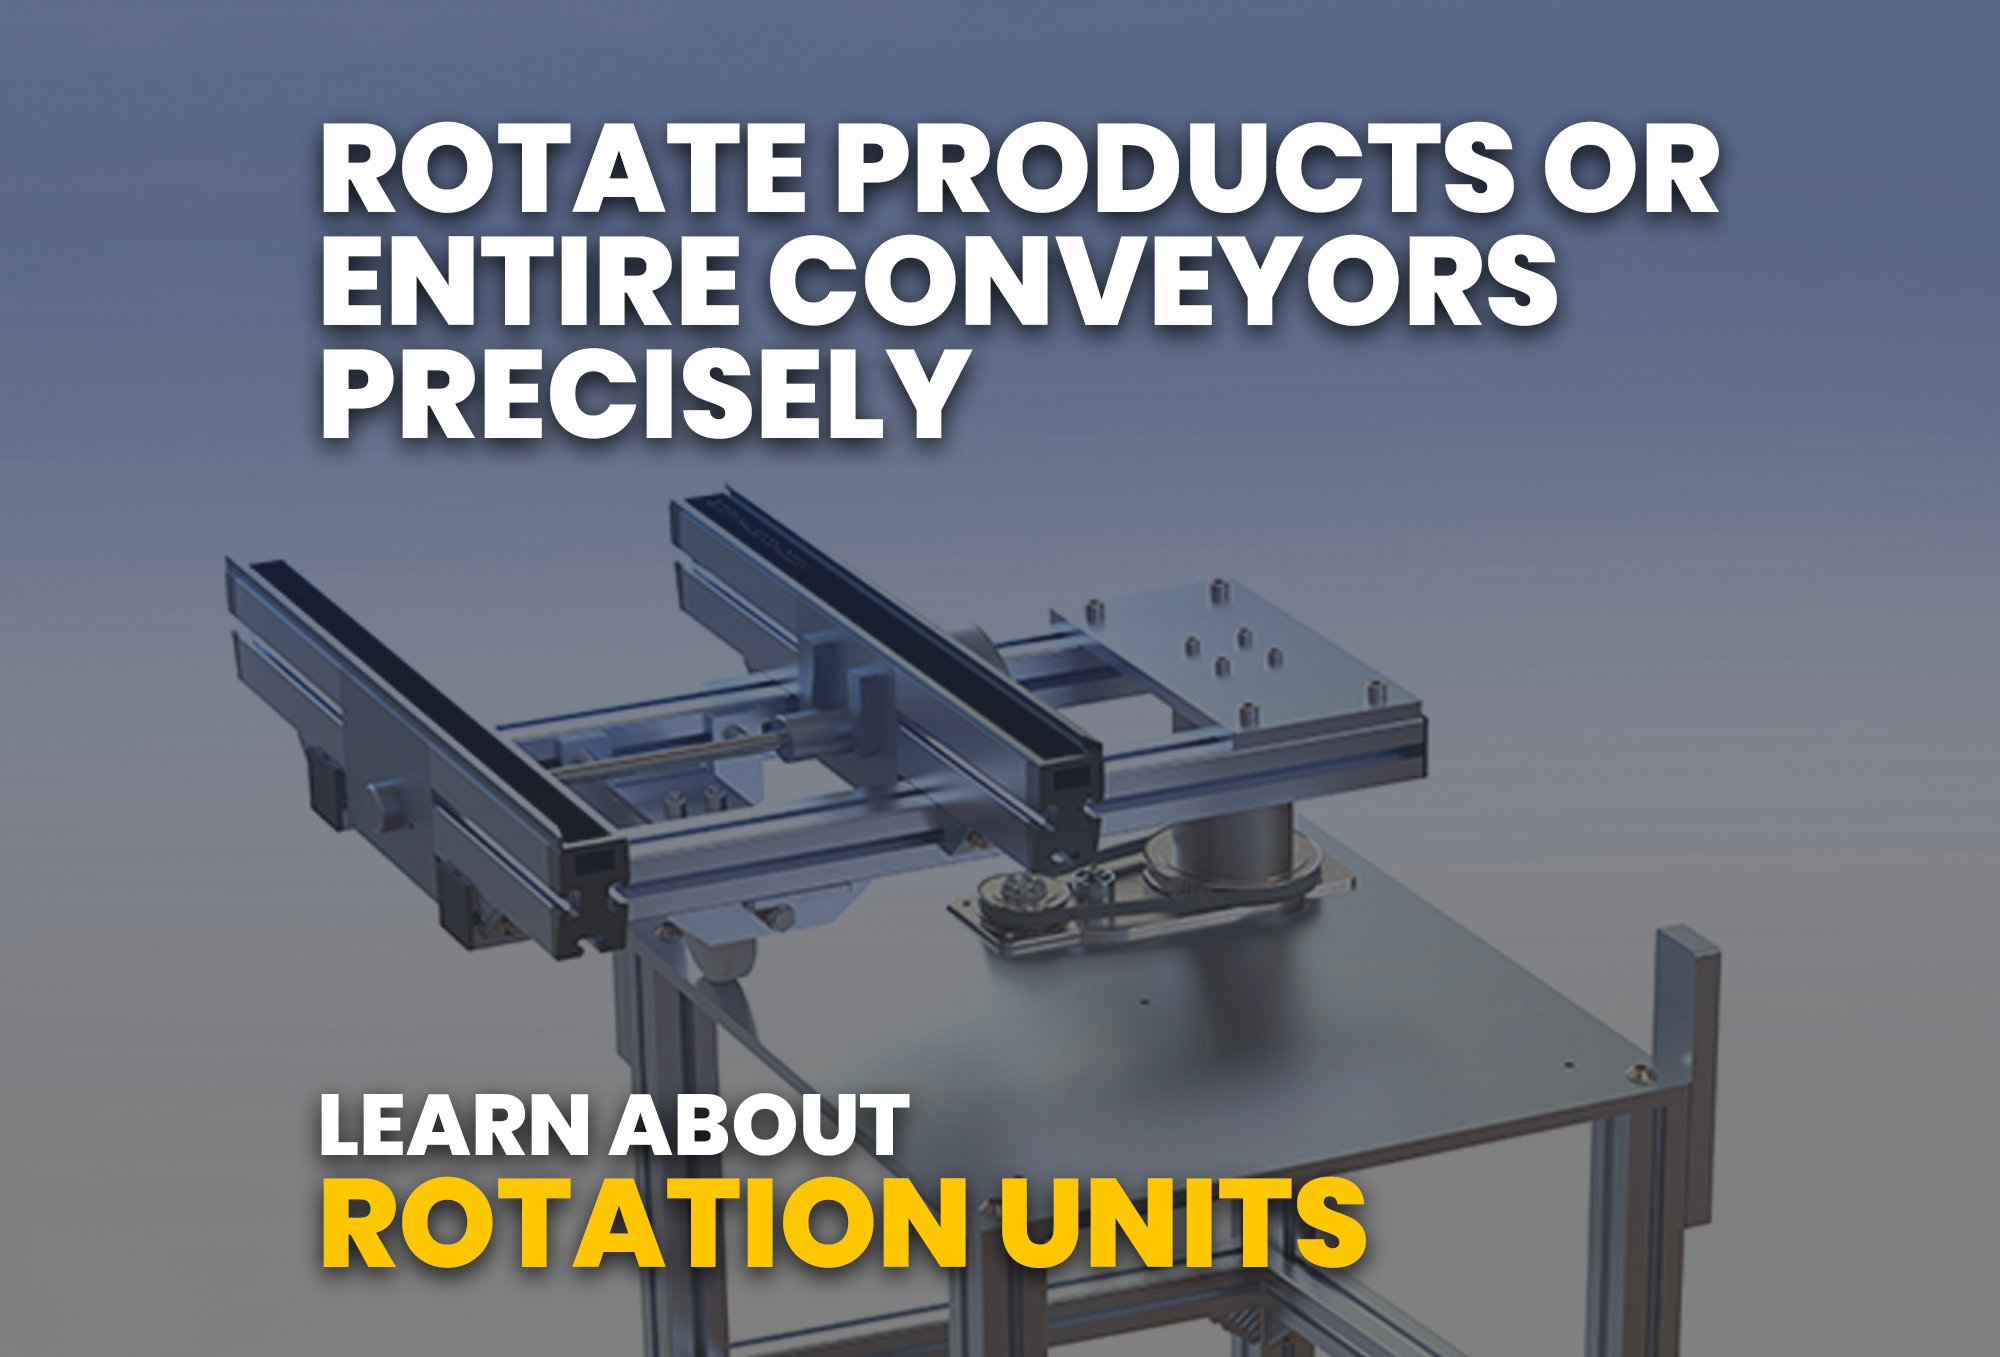 Learn About Rotation